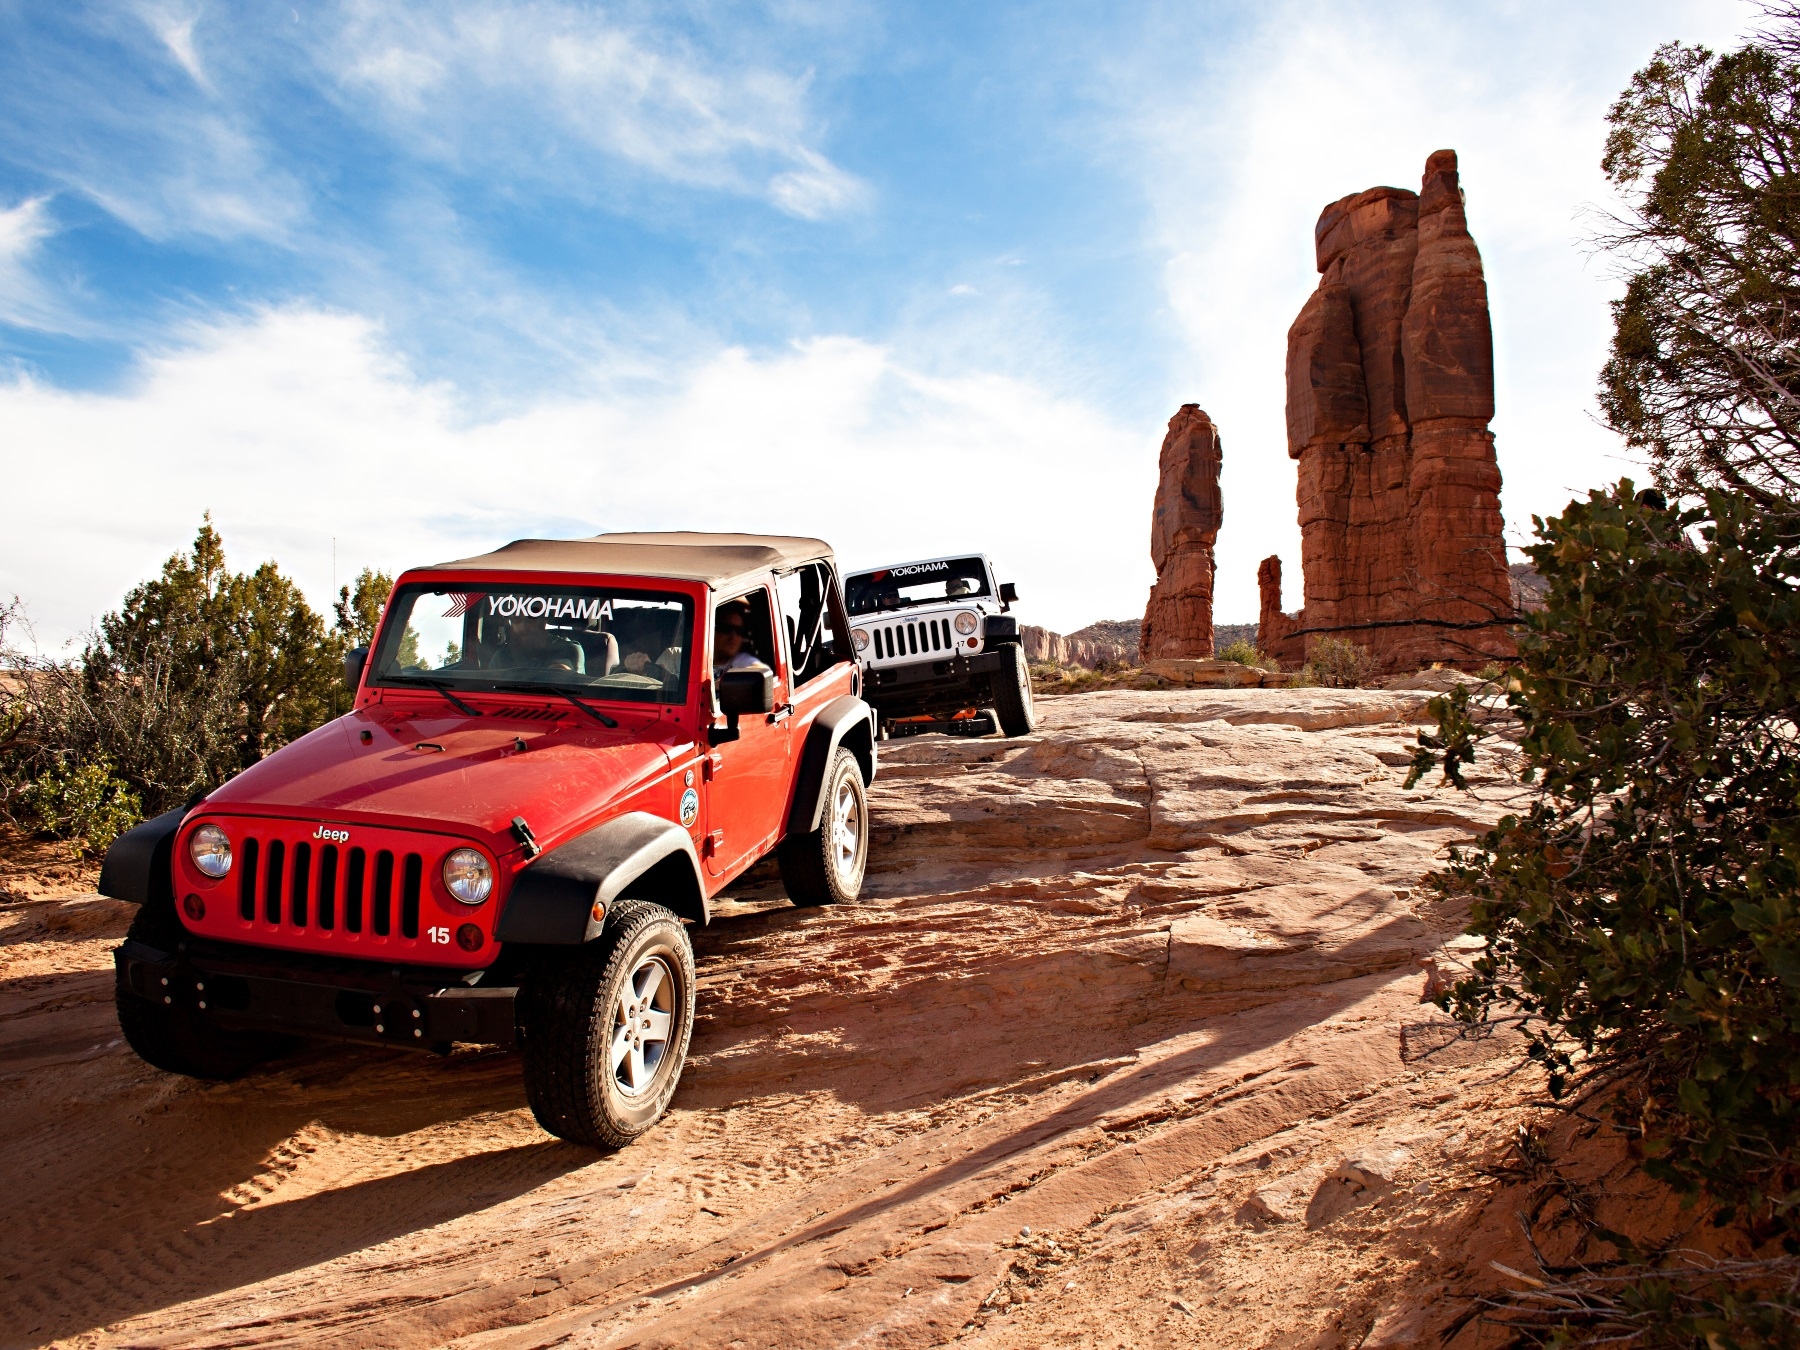 Yokohama Tire Corporation Hits the Trail as a Sponsor of Easter Jeep Safari Week's 50th Anniversary